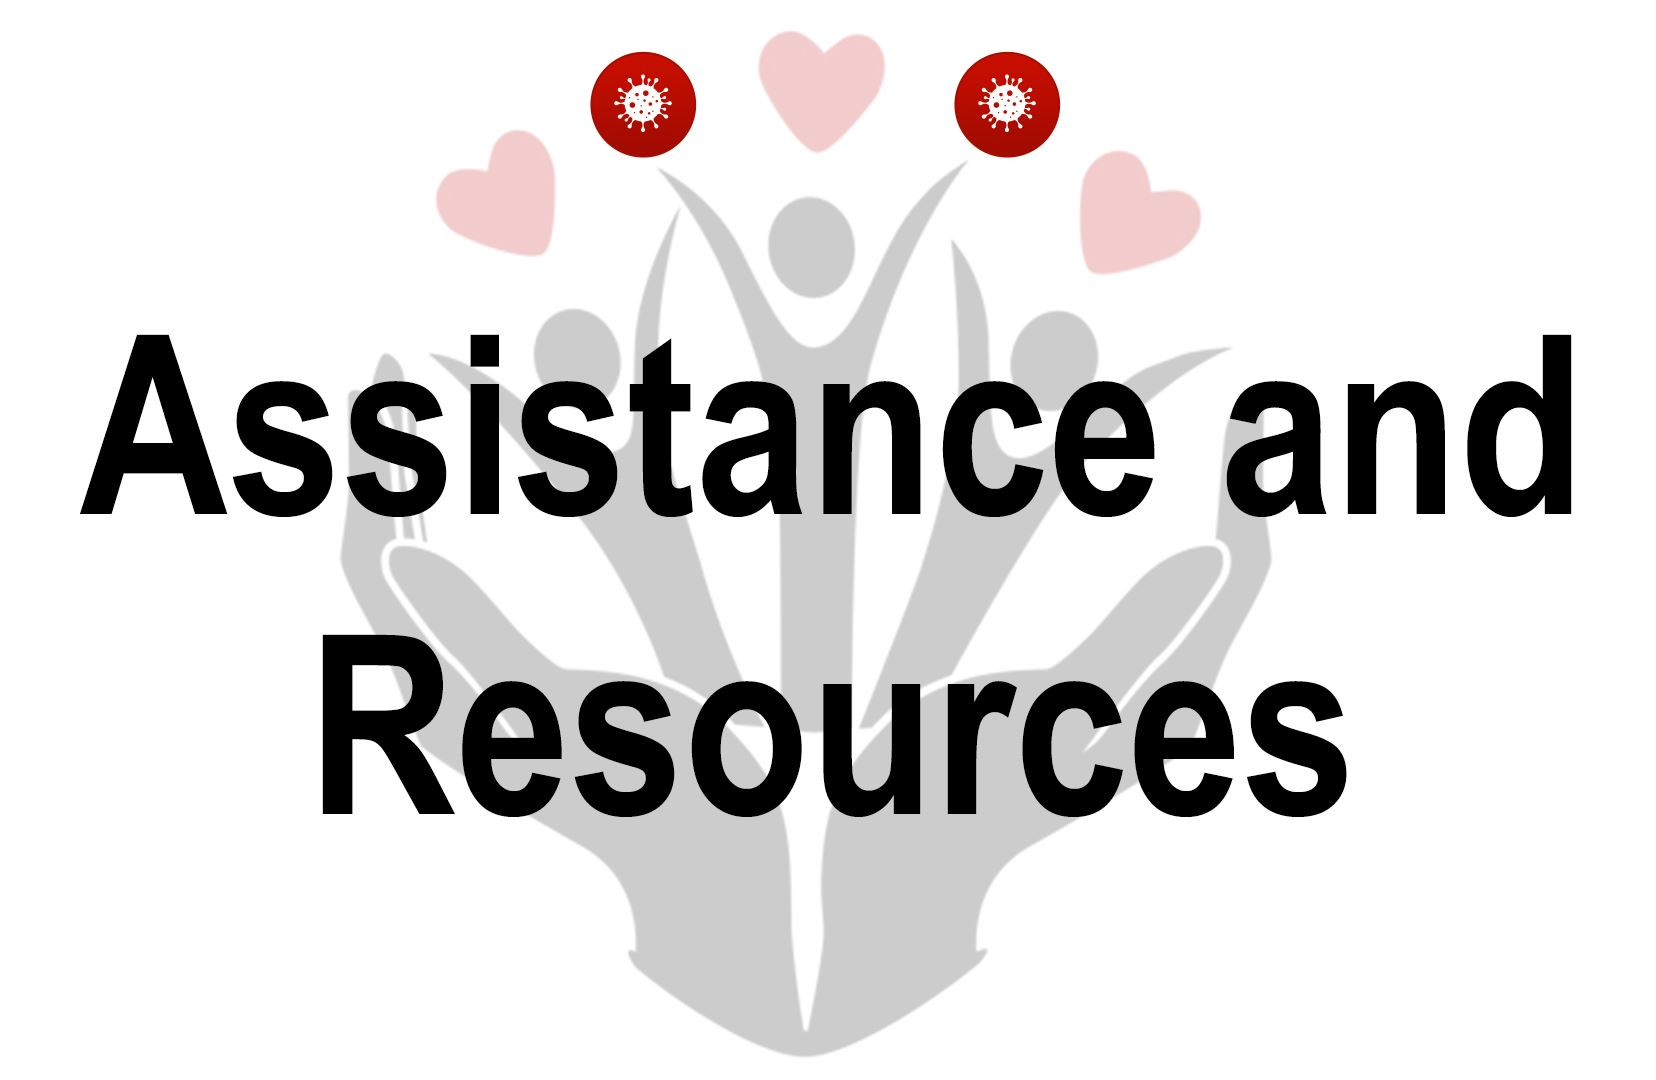 Assistance and Resources graphic with hands and hearts